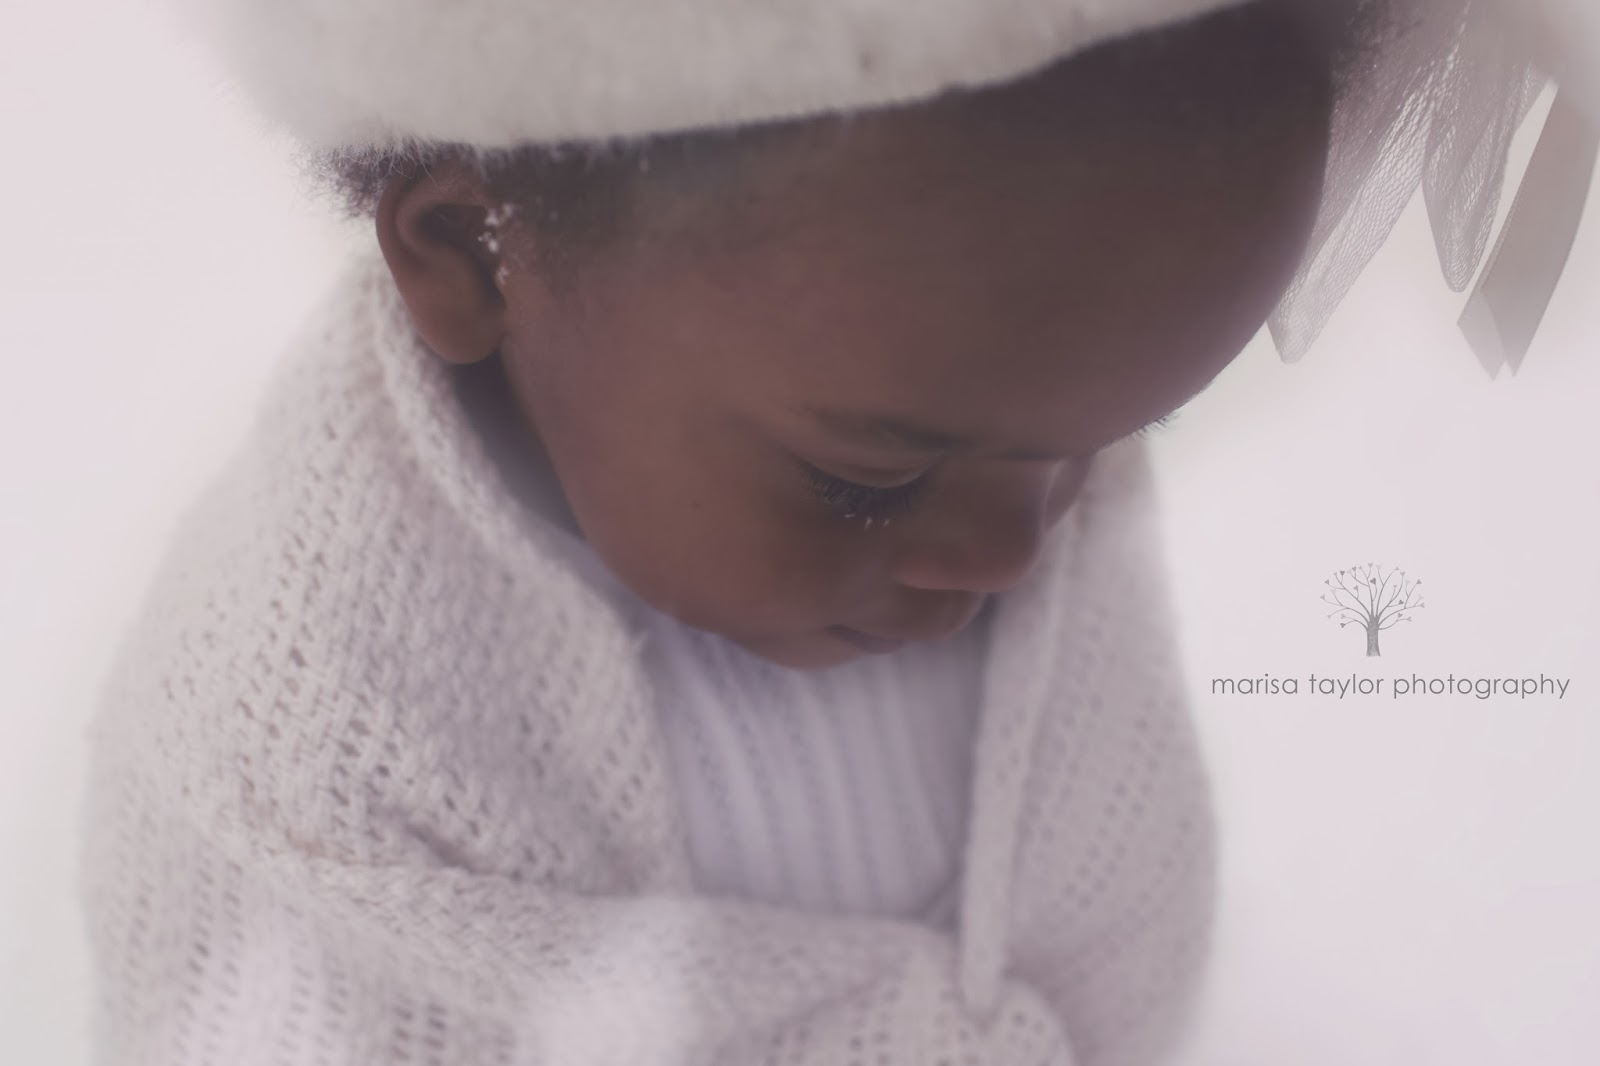 marisa taylor photography, delaware child photographer, snow day,